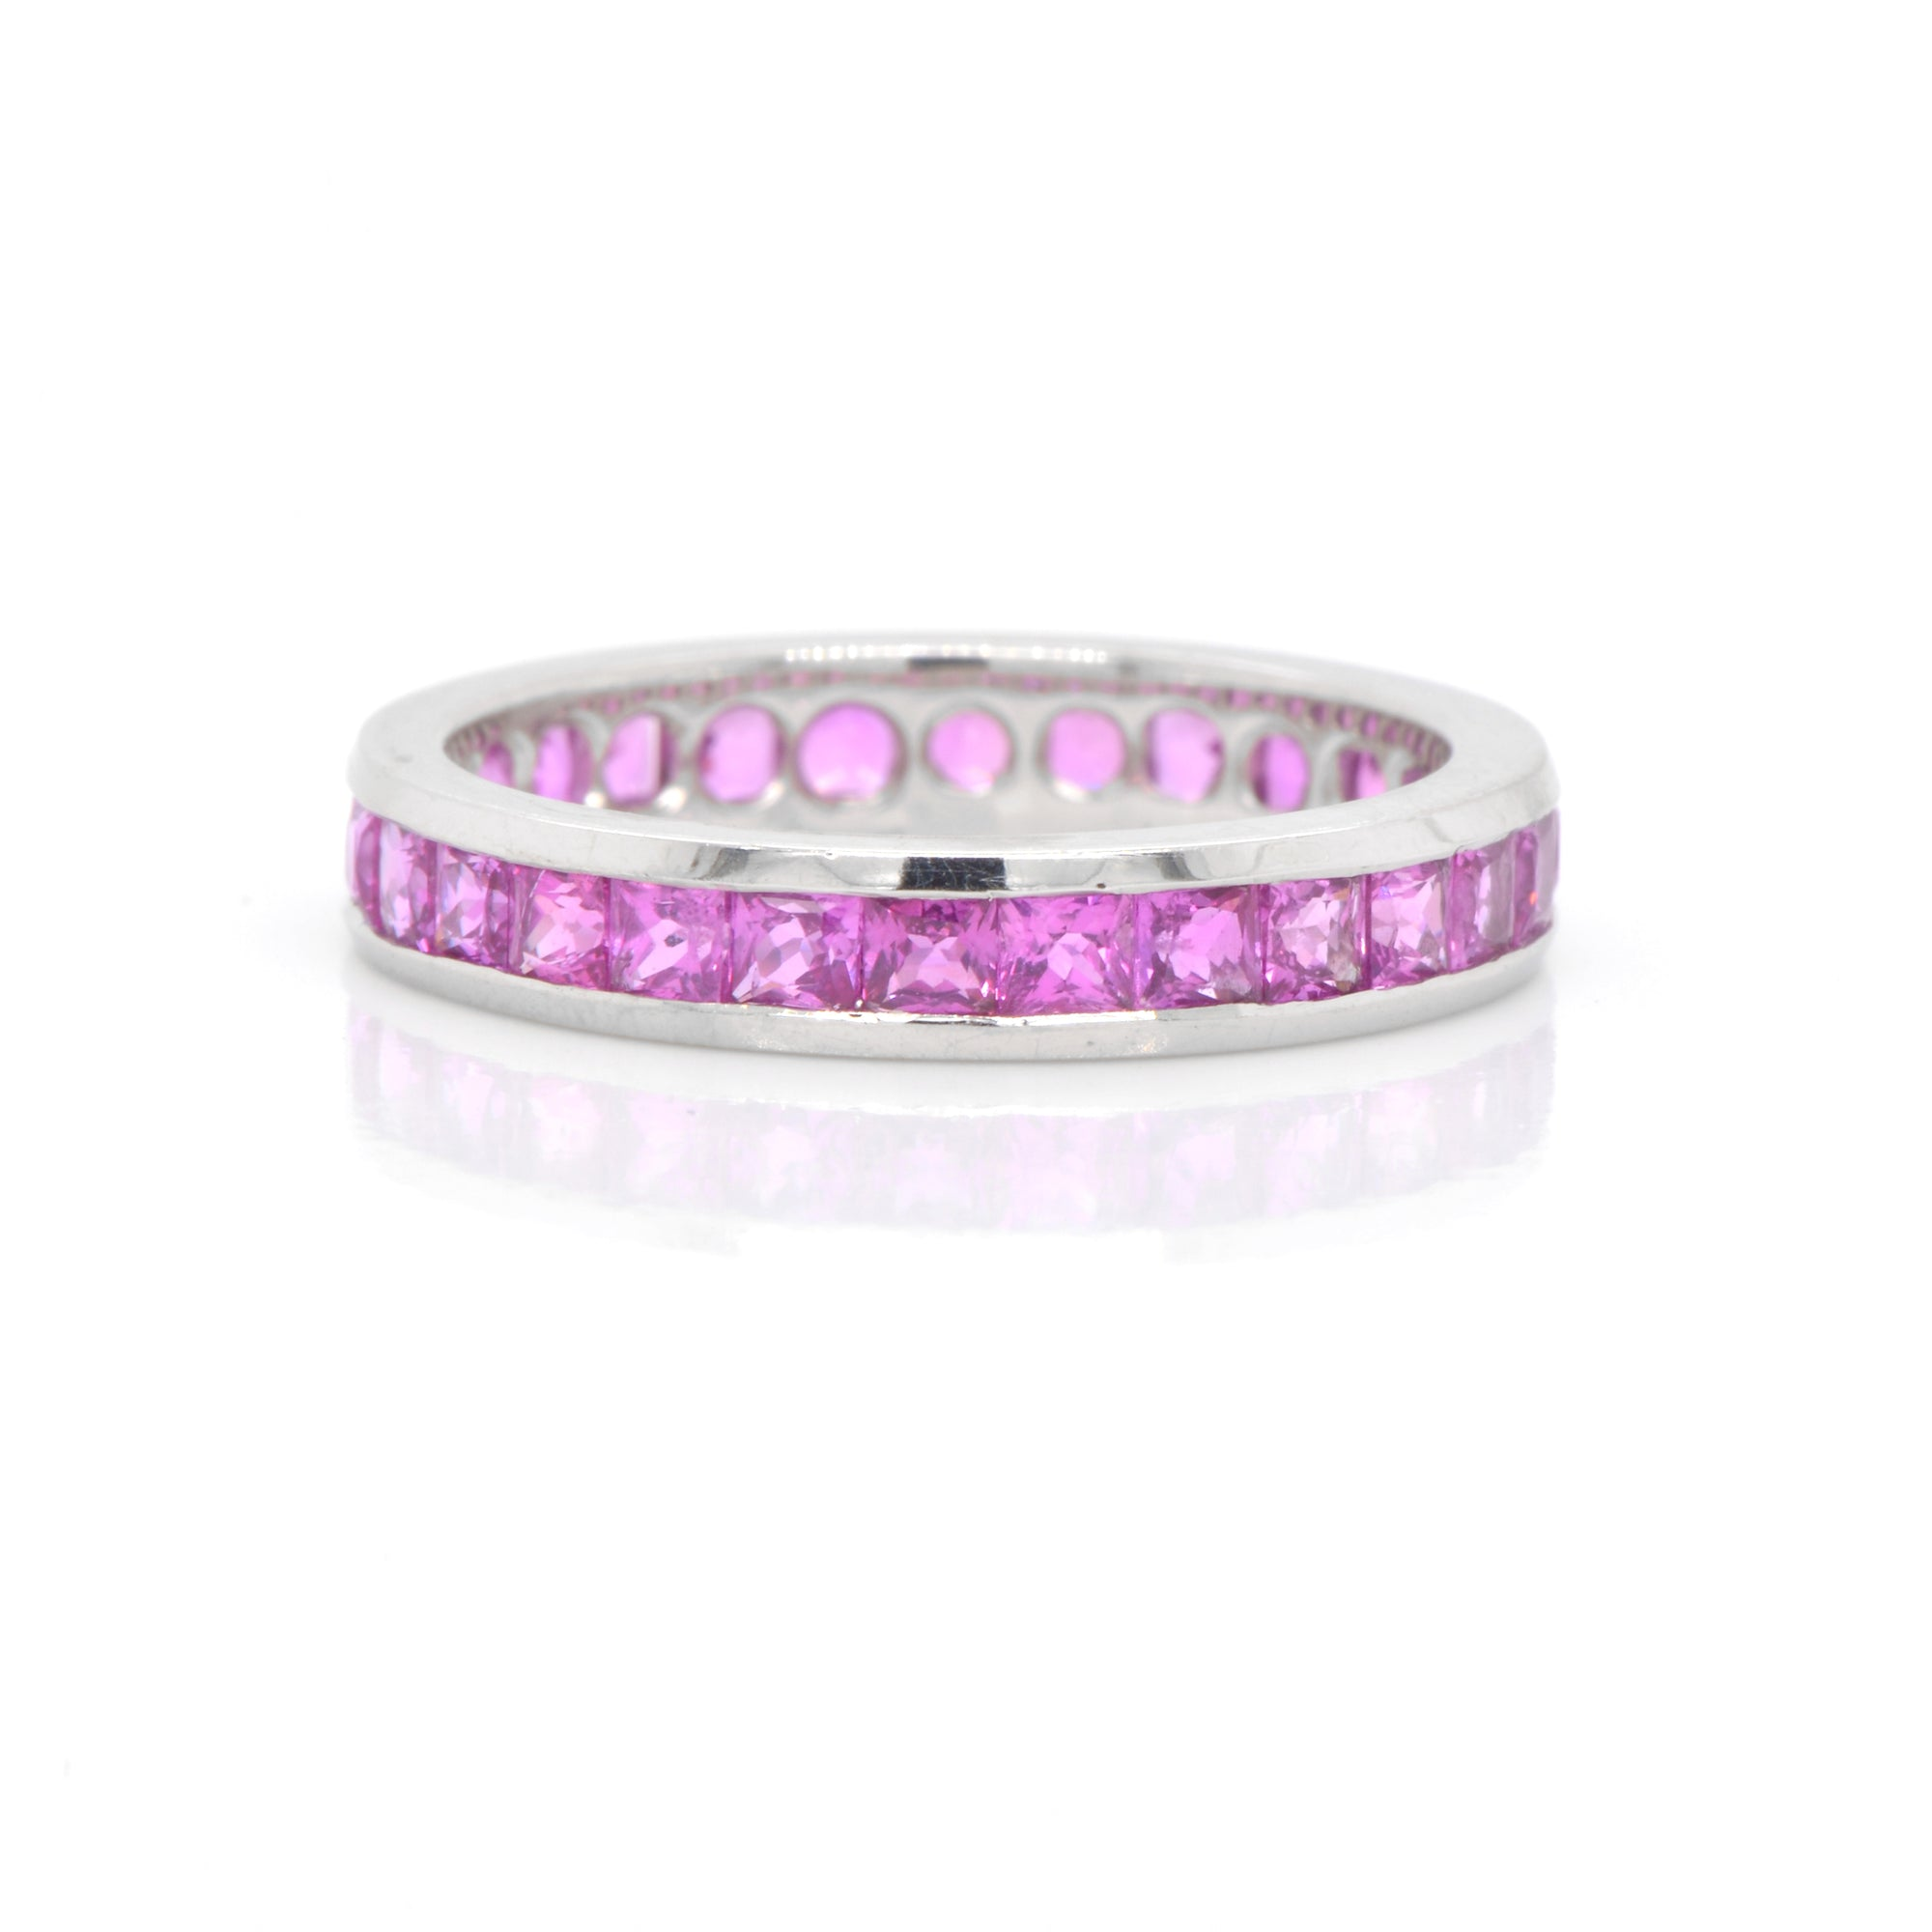 Platinum sapphire eternity band featuring princess-cut pink sapphires (2.43ctw) channel set in bright, white platinum in a full eternity design.